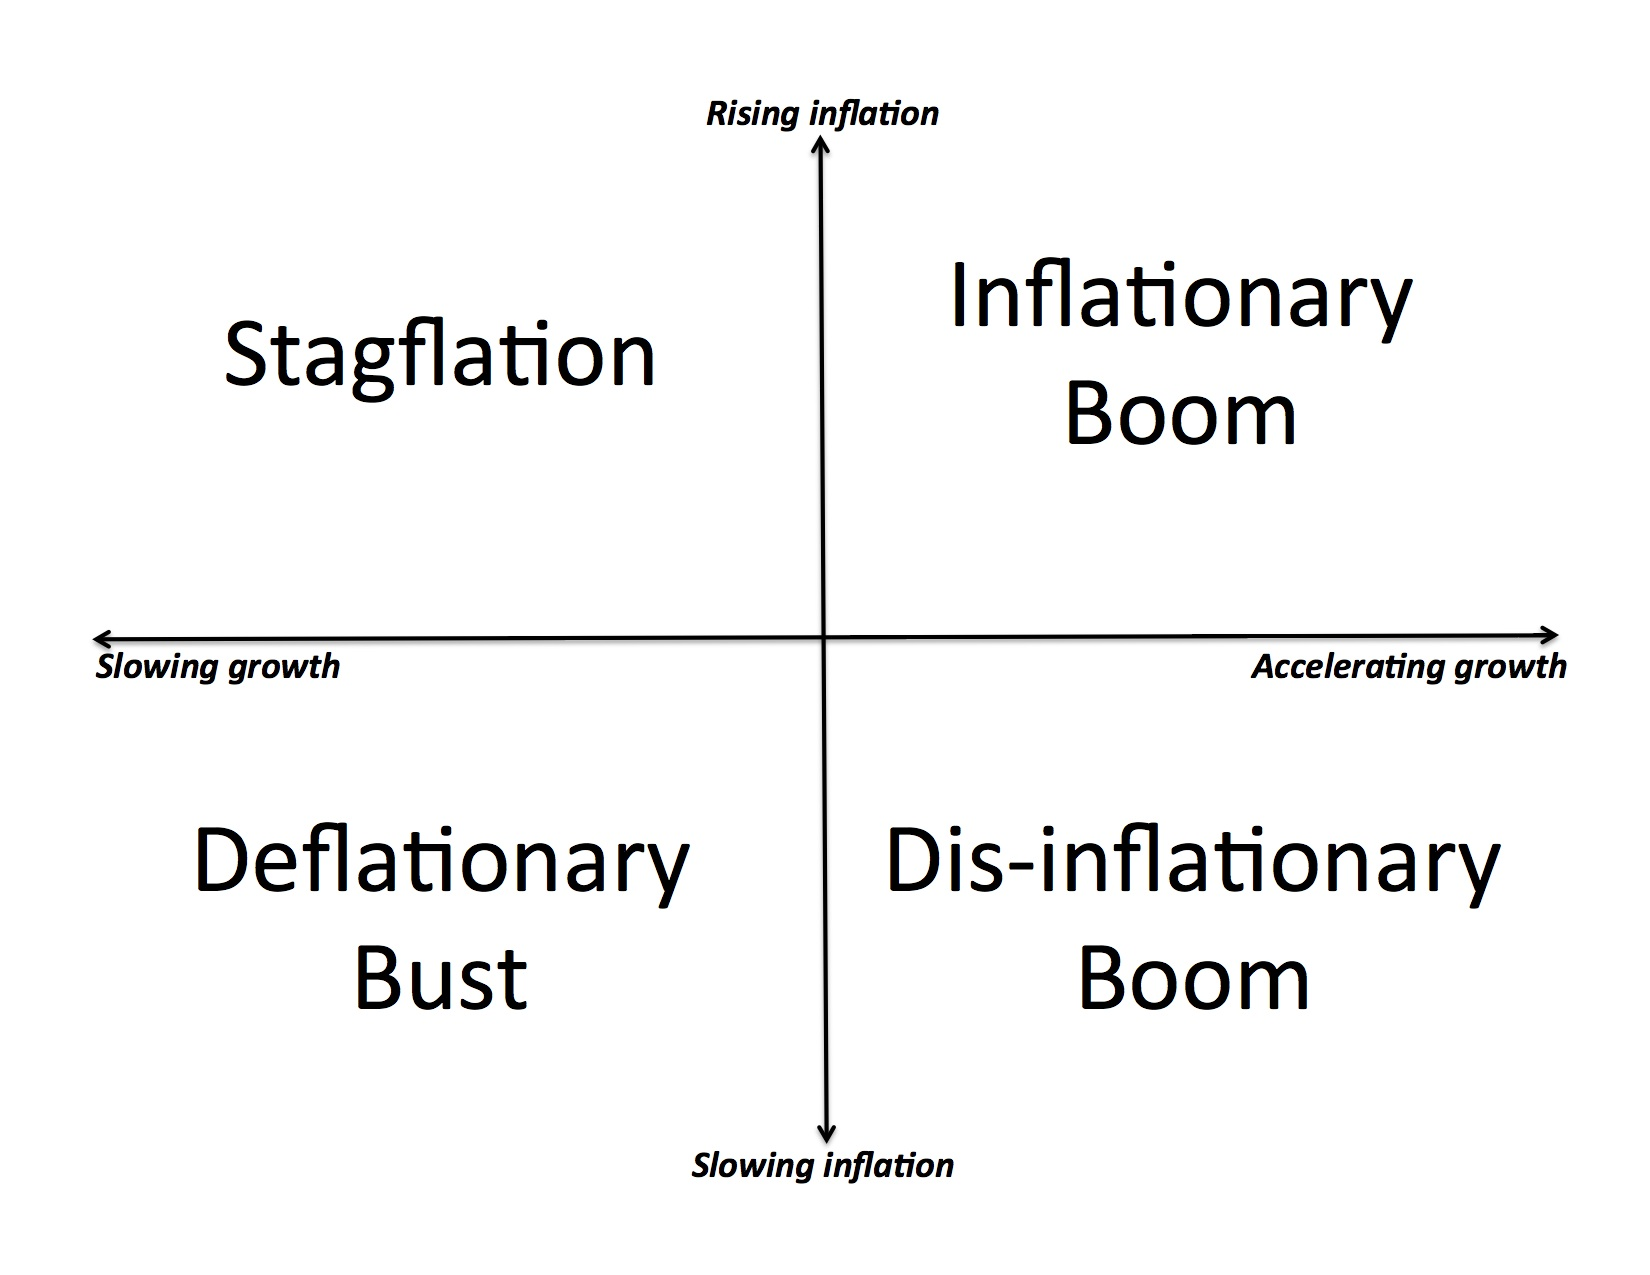 Inflation and Growth quadrants